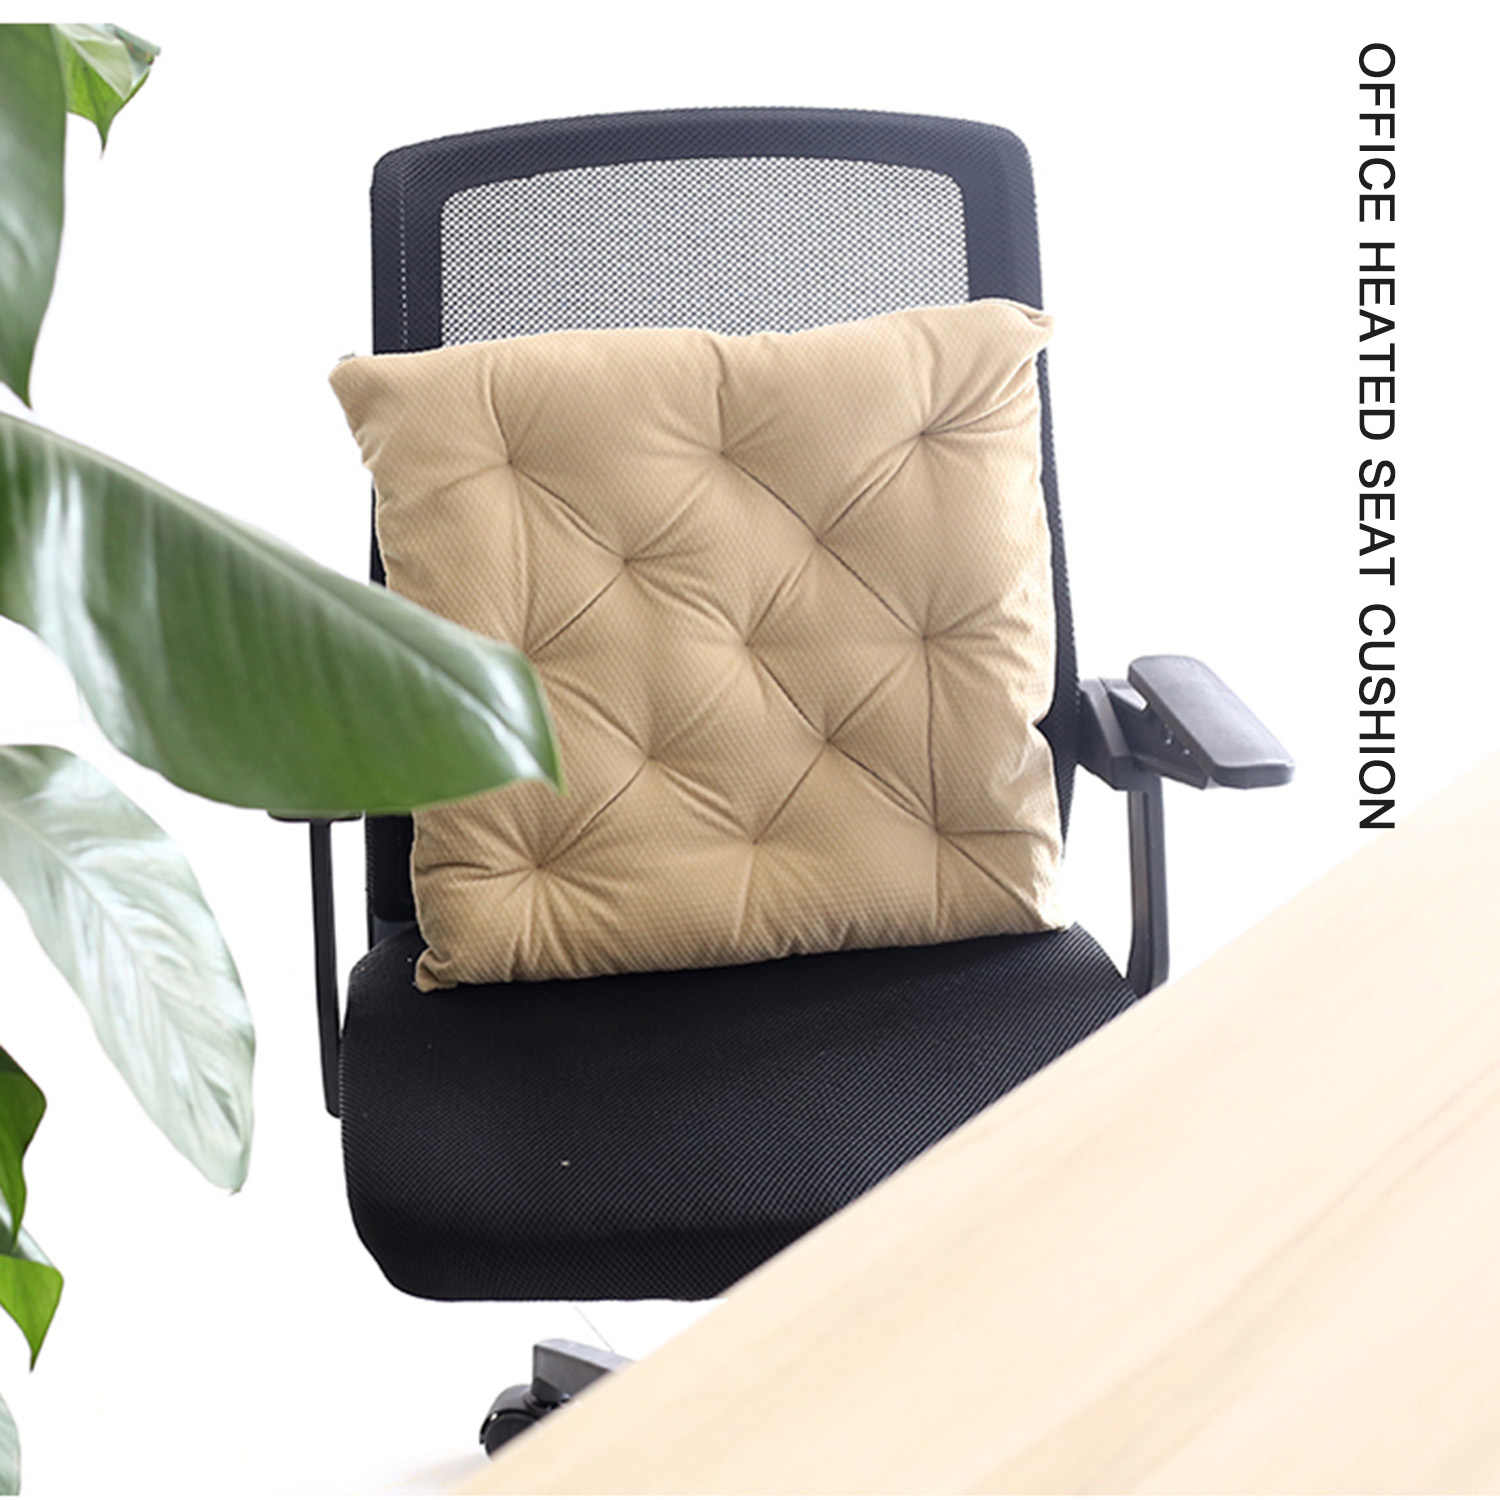 12v Home Office Seat Winter Warmer Cover Chair Heated Seat Cushion Cover Seat Household Electric Heating Heater Pad Aliexpress